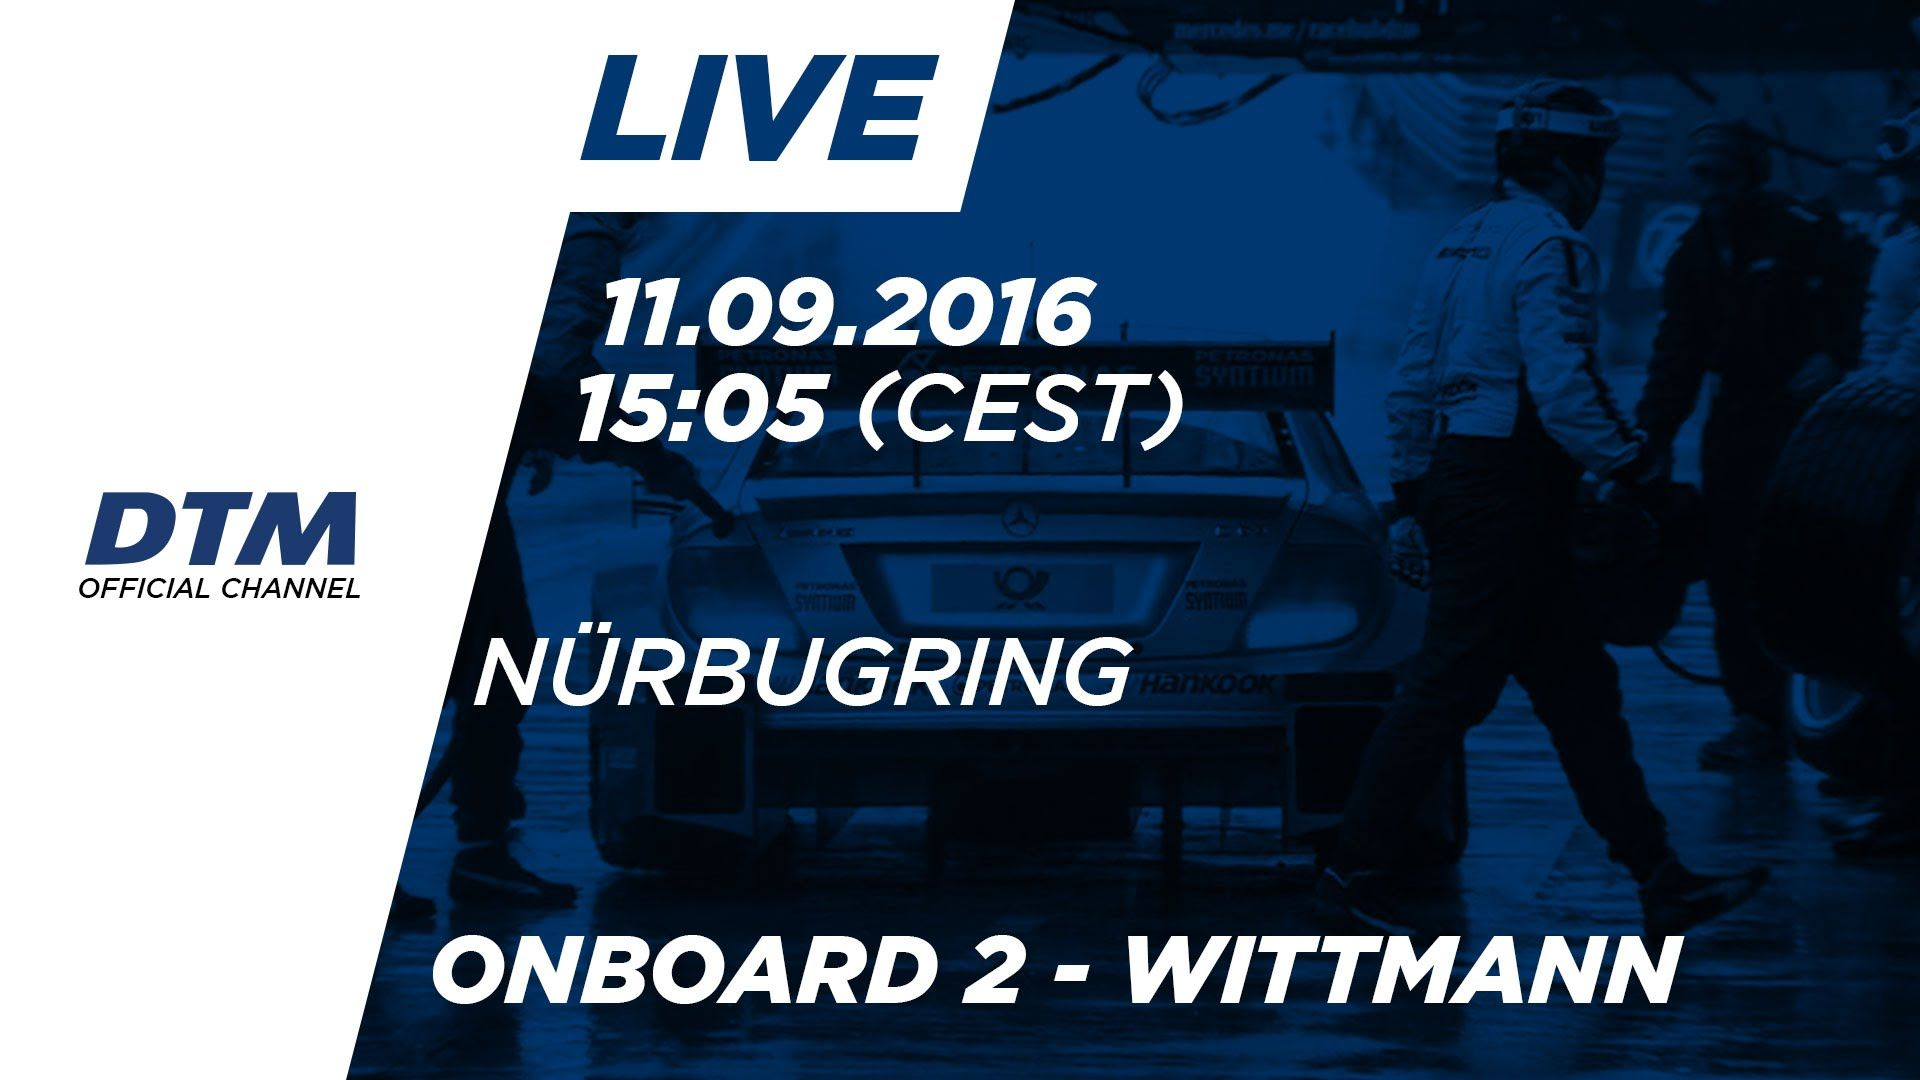 Marco Wittmann (BMW M4 DTM) - LIVE Onboard (Race 2) - DTM Nürburgring 2016 // Watch race 2 in Nürburgring from the perspective of Marco Wittmann (BMW M4 DTM).  Schaut euch das zweite DTM Rennen in Nürburgring aus der Perspektive von Marco Wittmann (BMW M4 DTM) an!  Onboard Jamie Green: https://youtub.be/JIr6lZftkkA Onboard Robert Wickens: https://youtub.be/PosVVVpY2Go  Subscribe to our YouTube channel (http://bit.do/subscribeDTM) and follow us on our social media platforms.